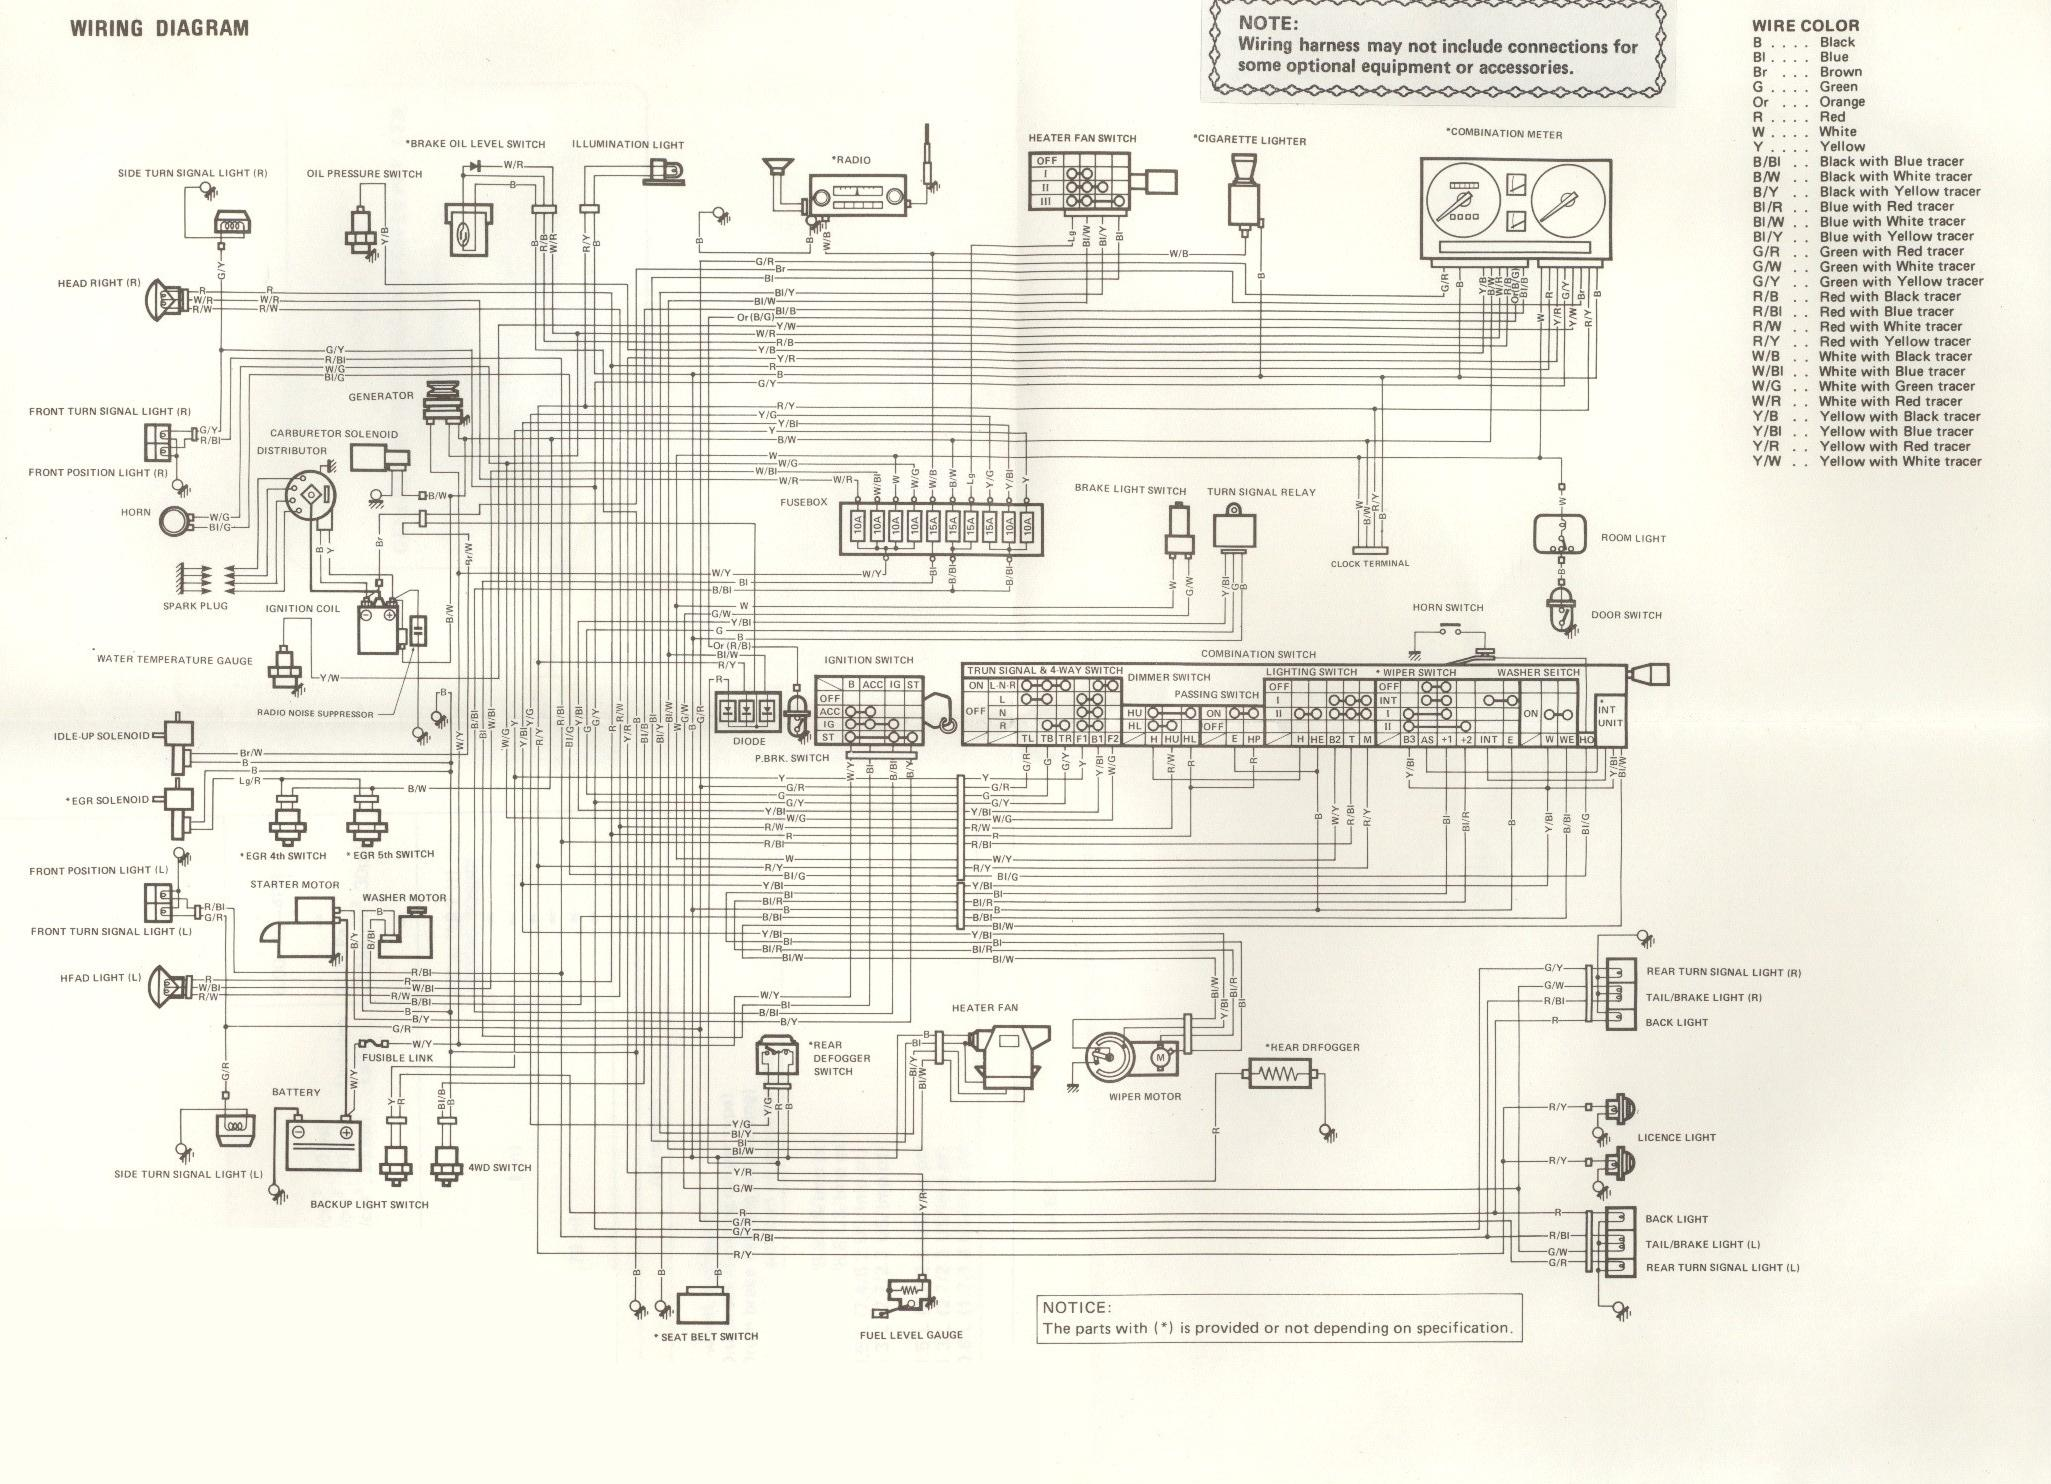 87 Suzuki Samurai Ignition Wiring Diagram